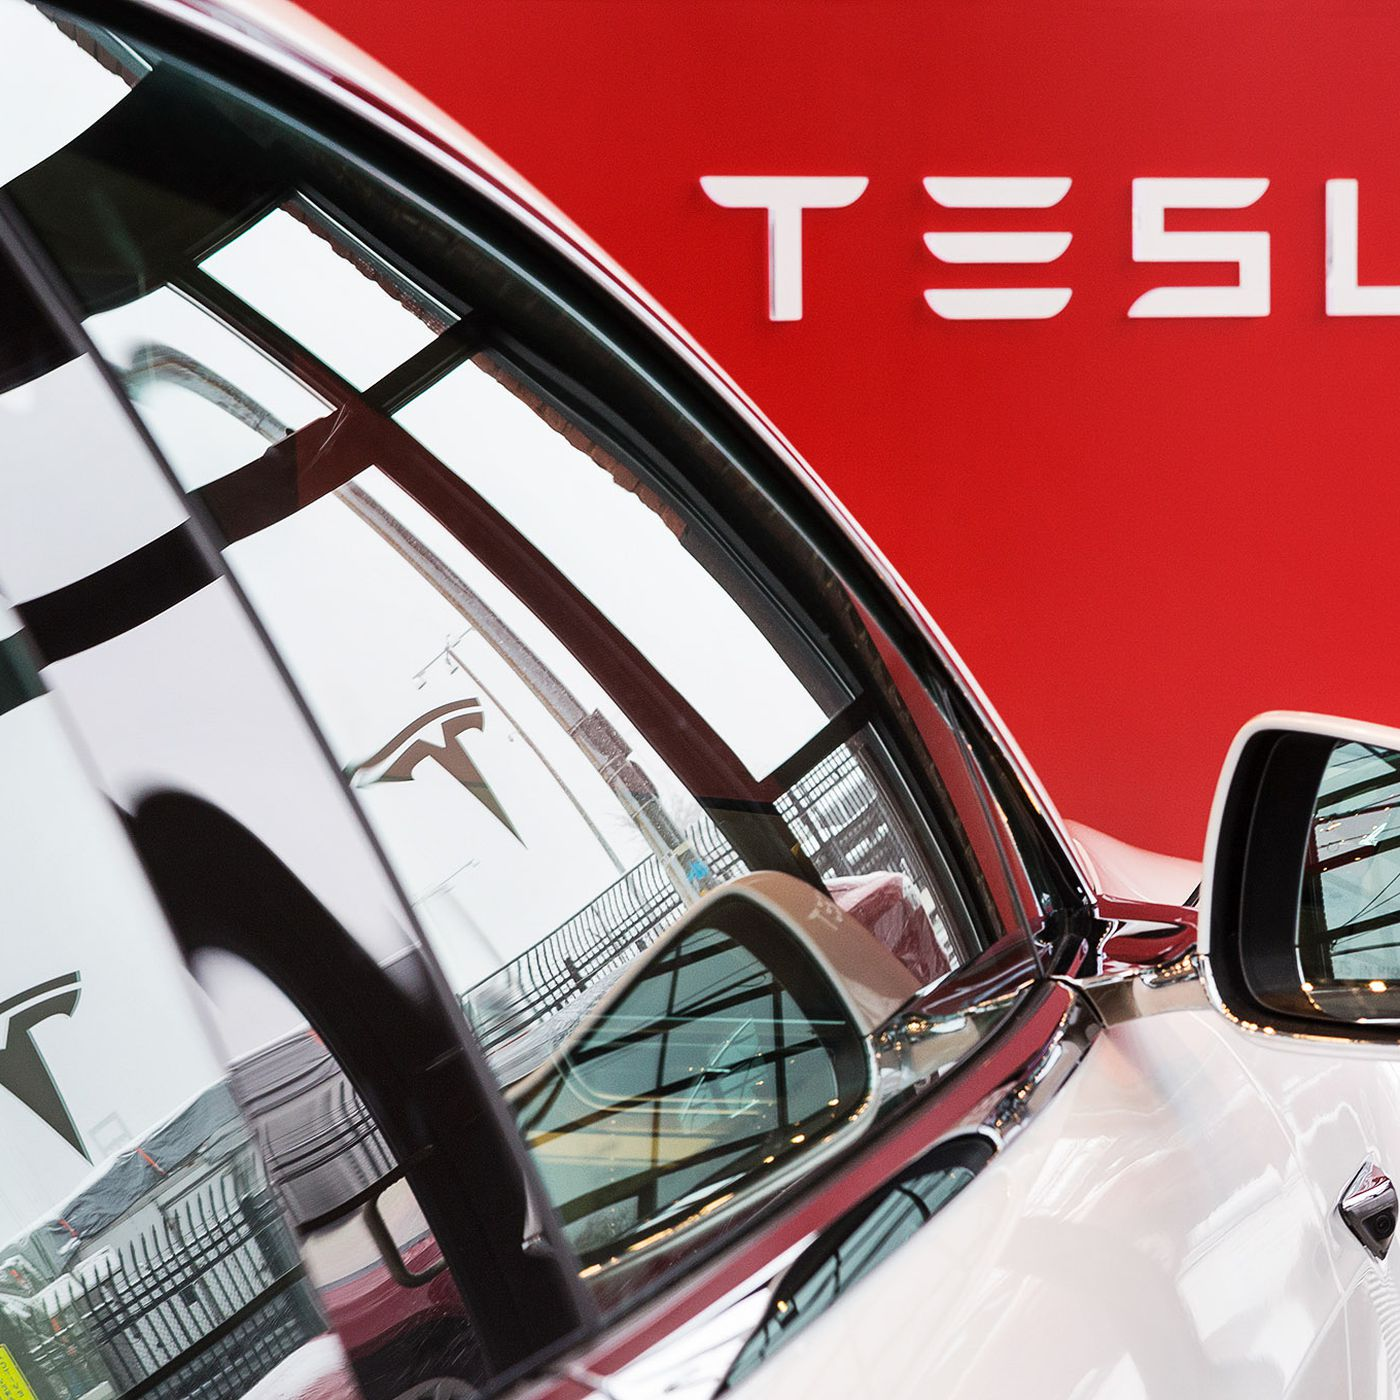 Tesla stopped promoting the 'Full Self-Driving' option for its cars